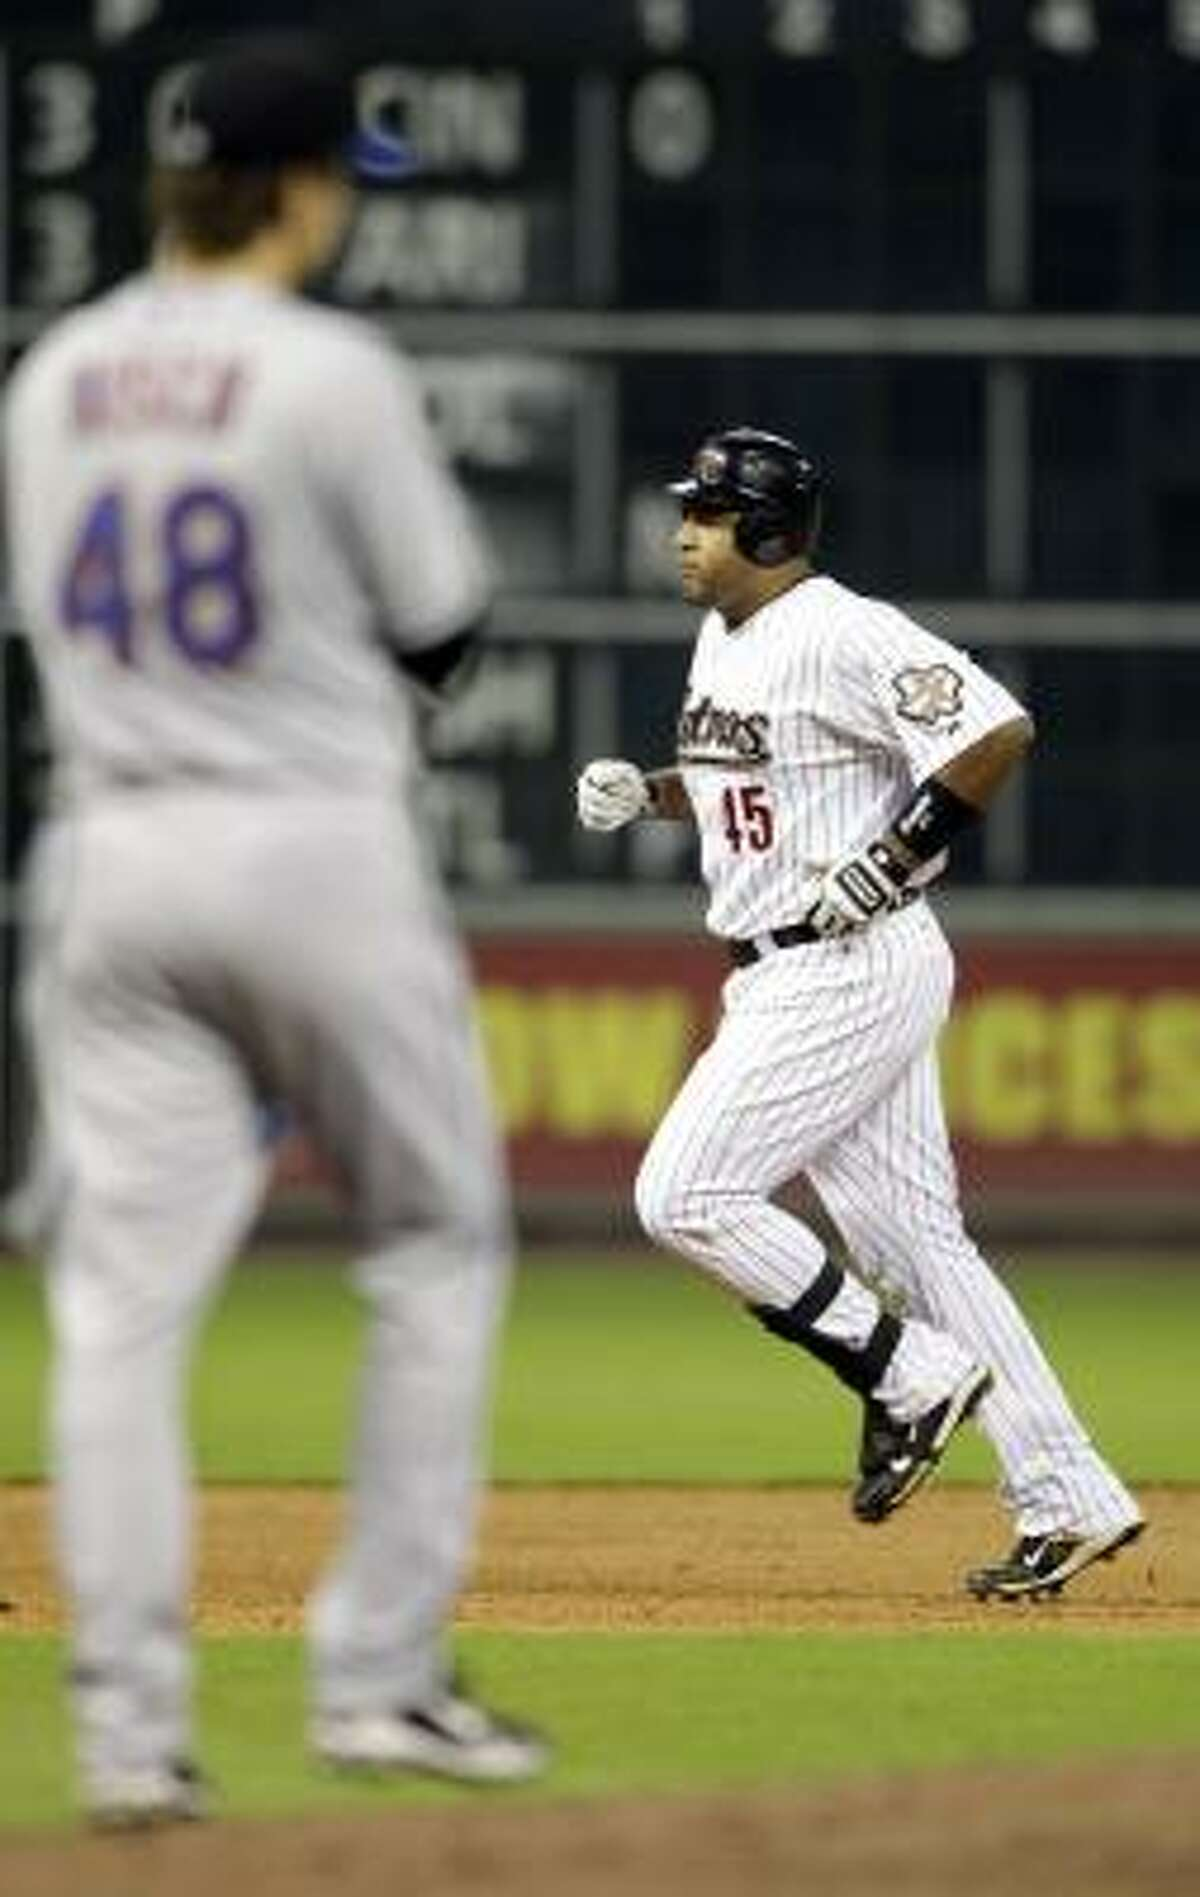 Carlos Lee rounds the bases after hitting a three-run home run during the seventh inning.